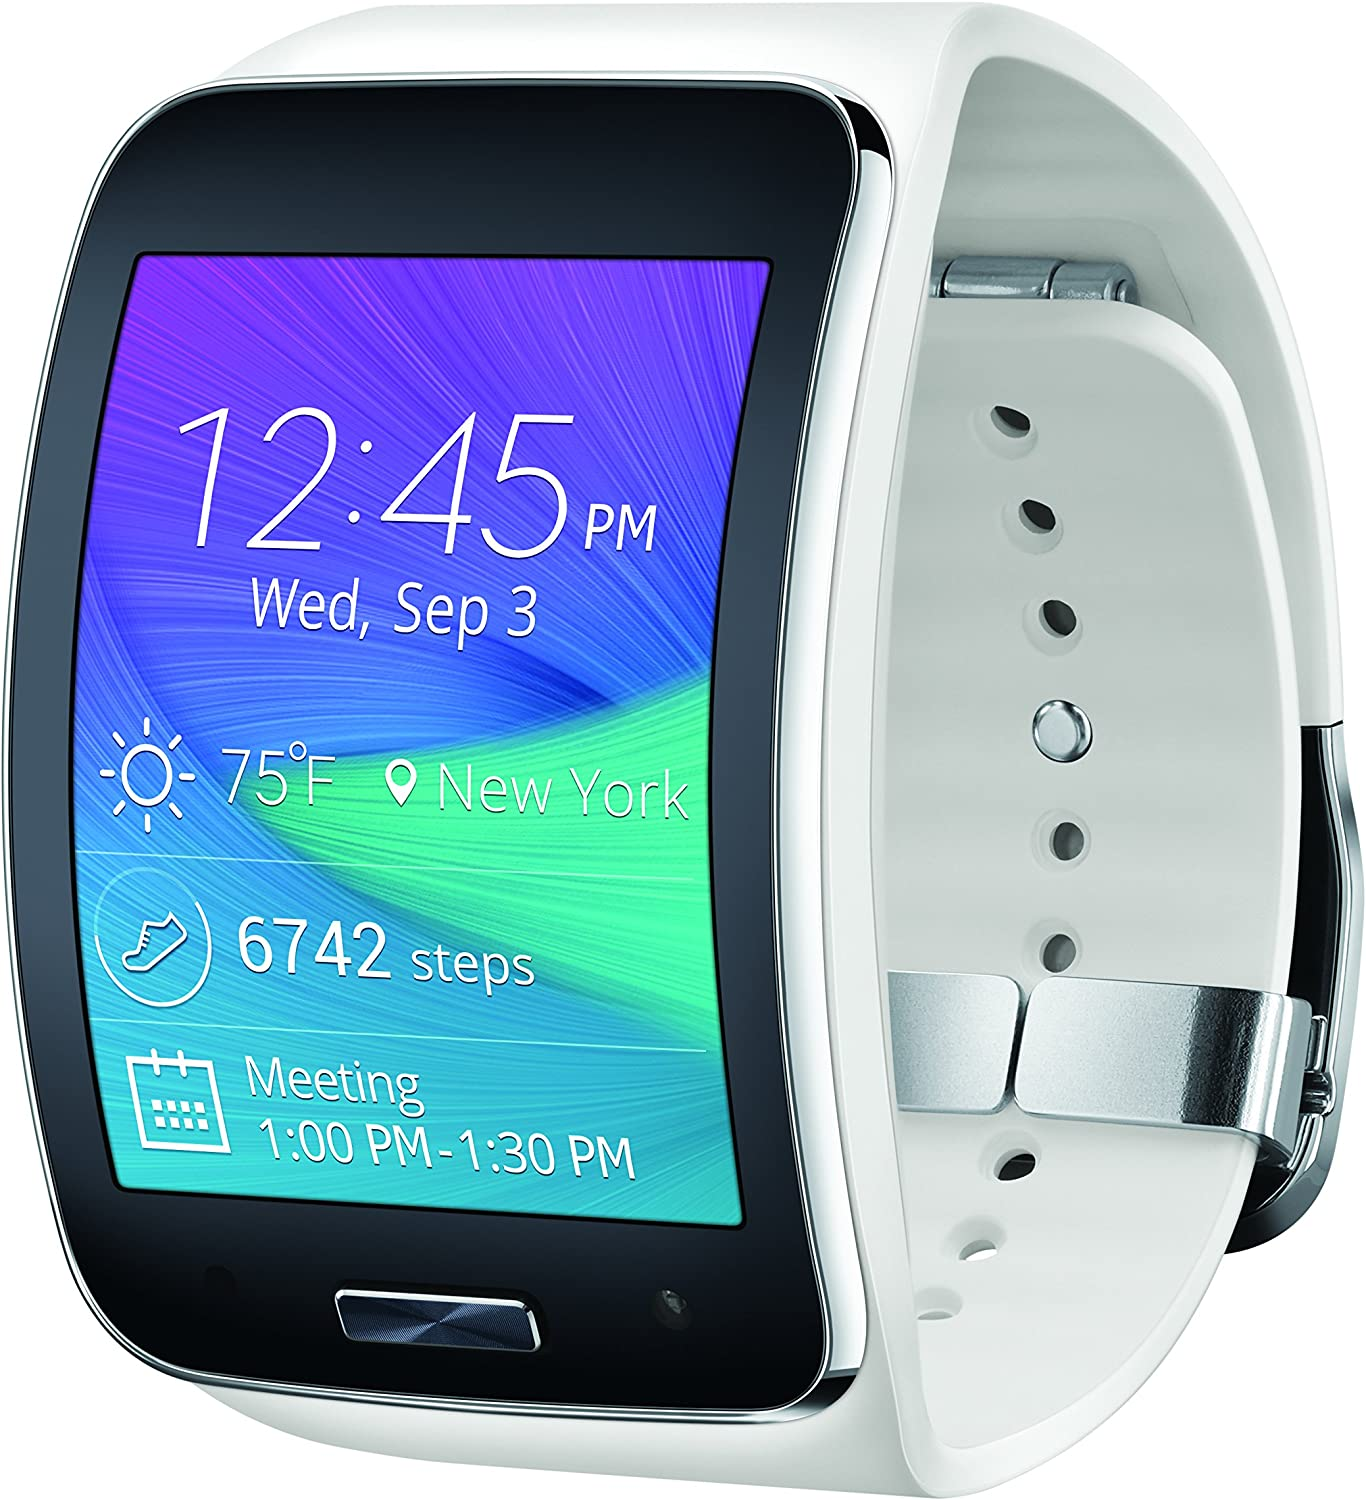 samsung gear s watch price in india